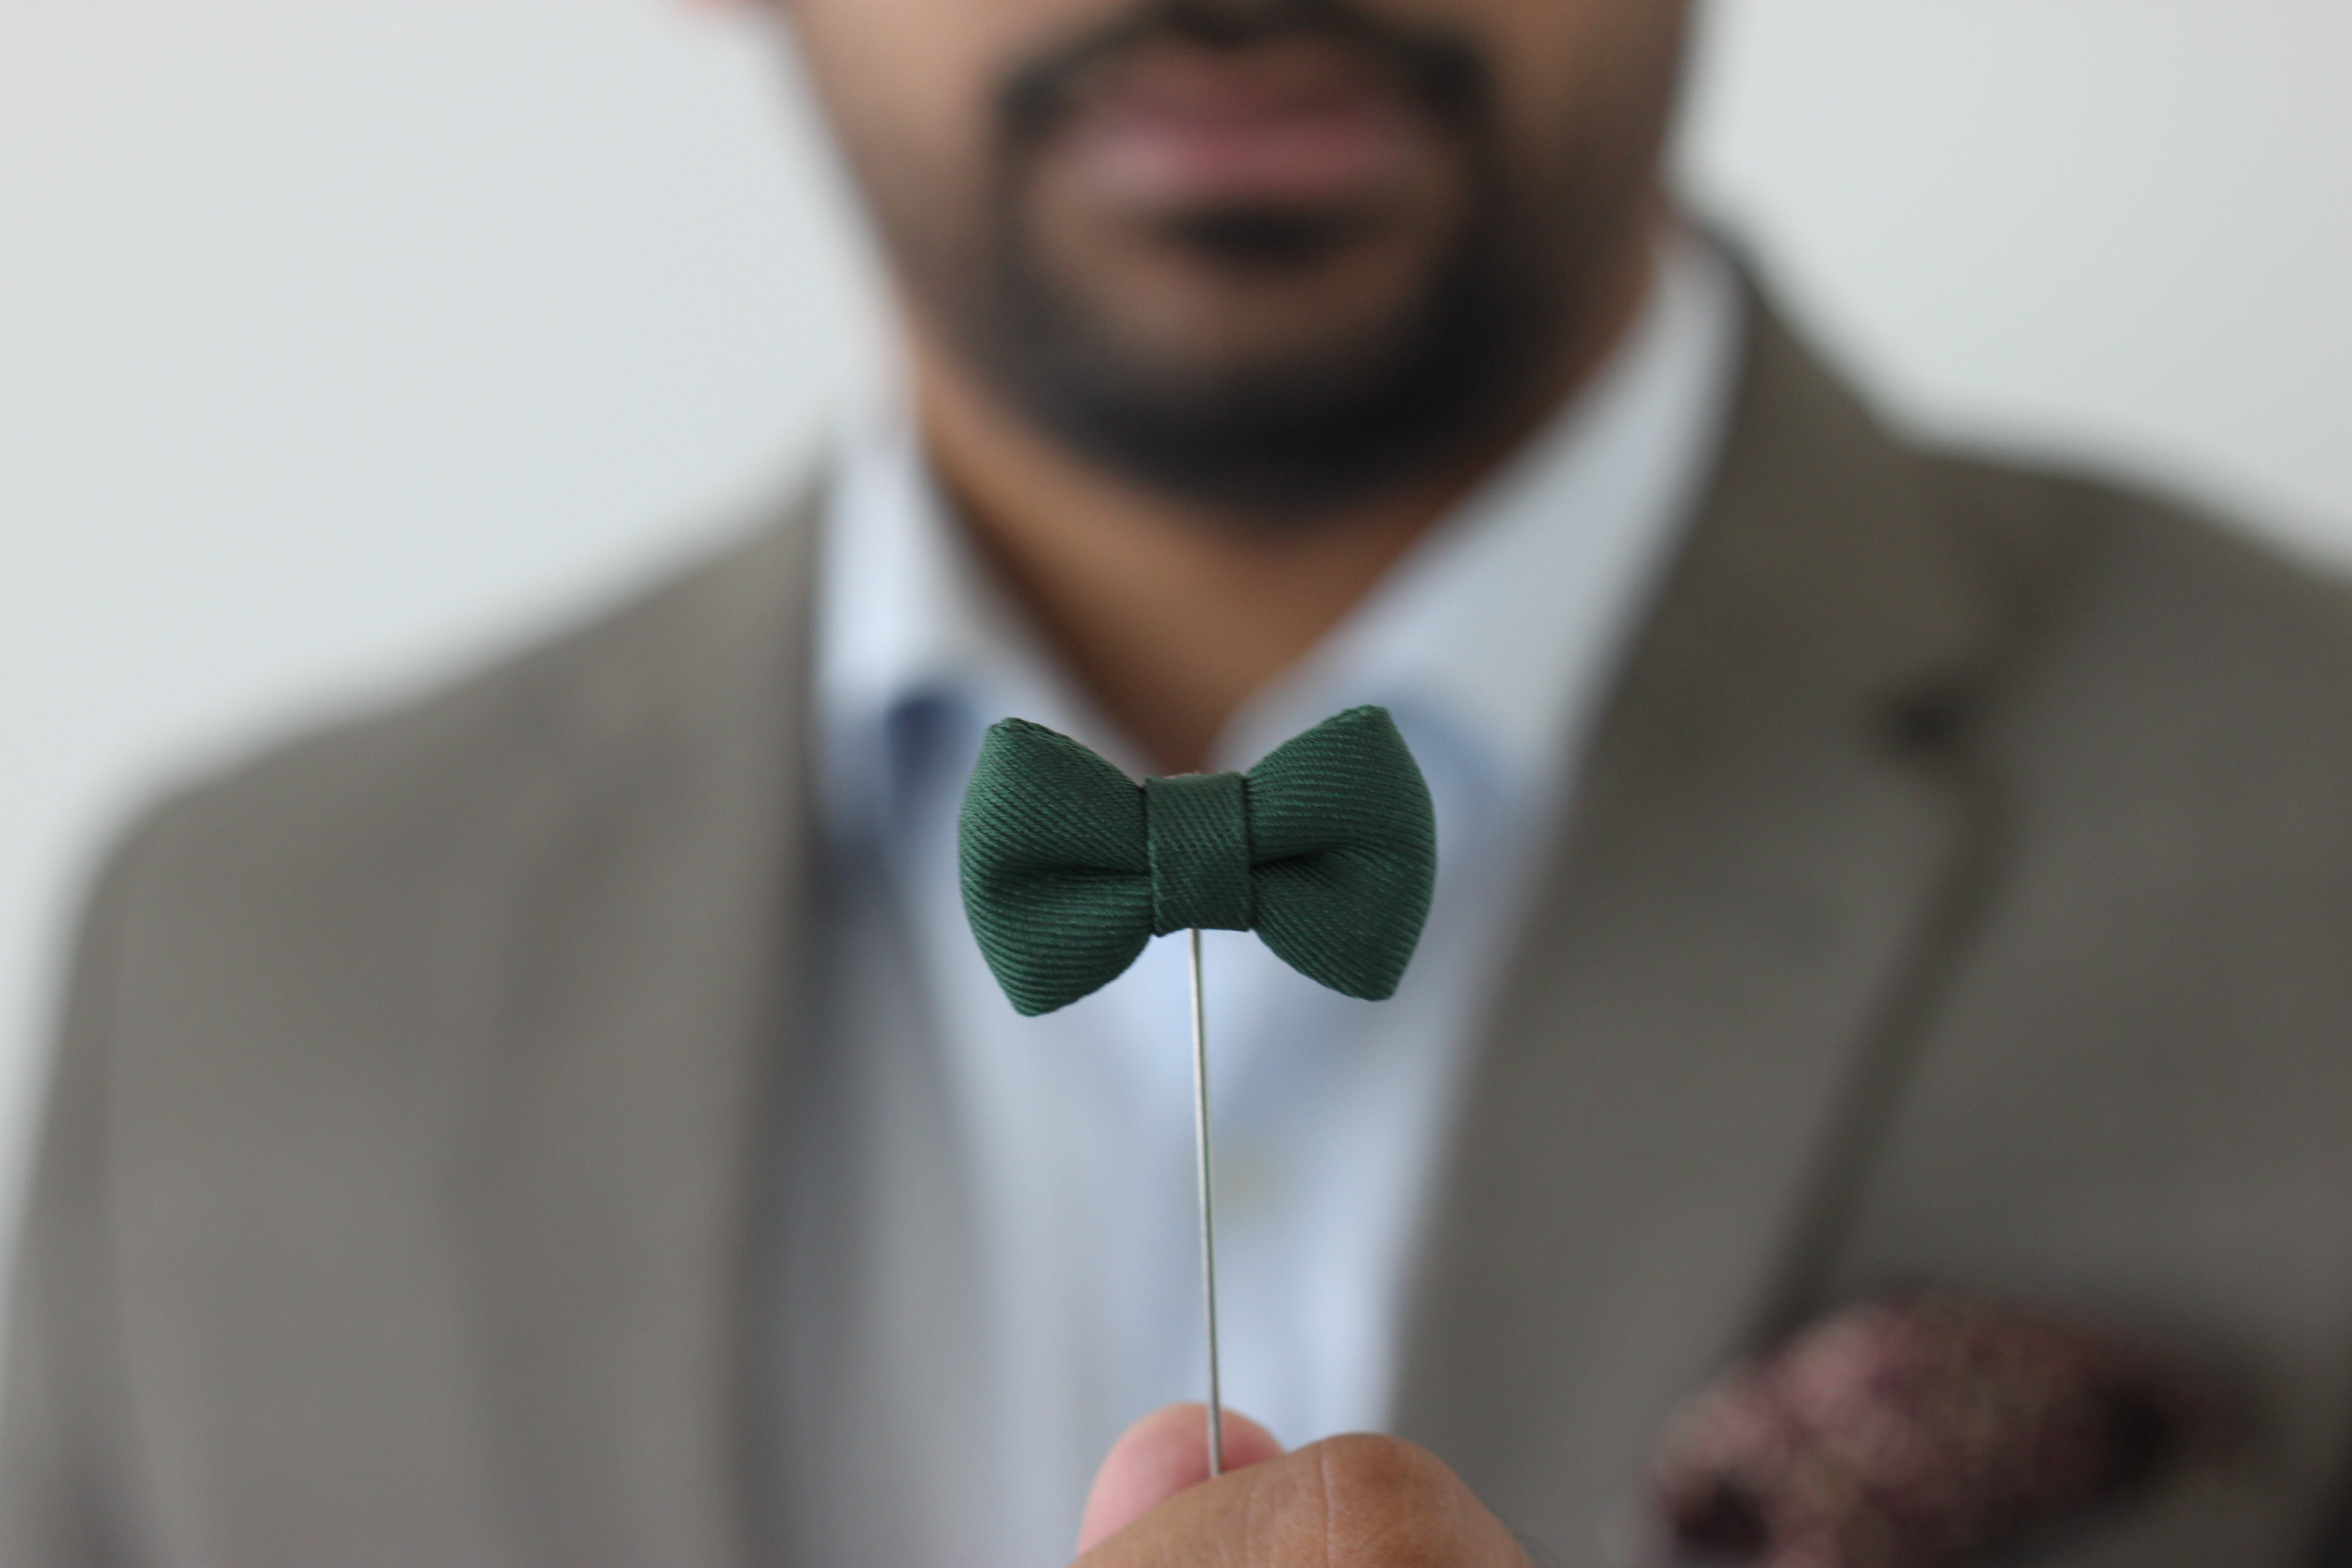 Green Bow Tie Forced Perspective Selective Focus Photo